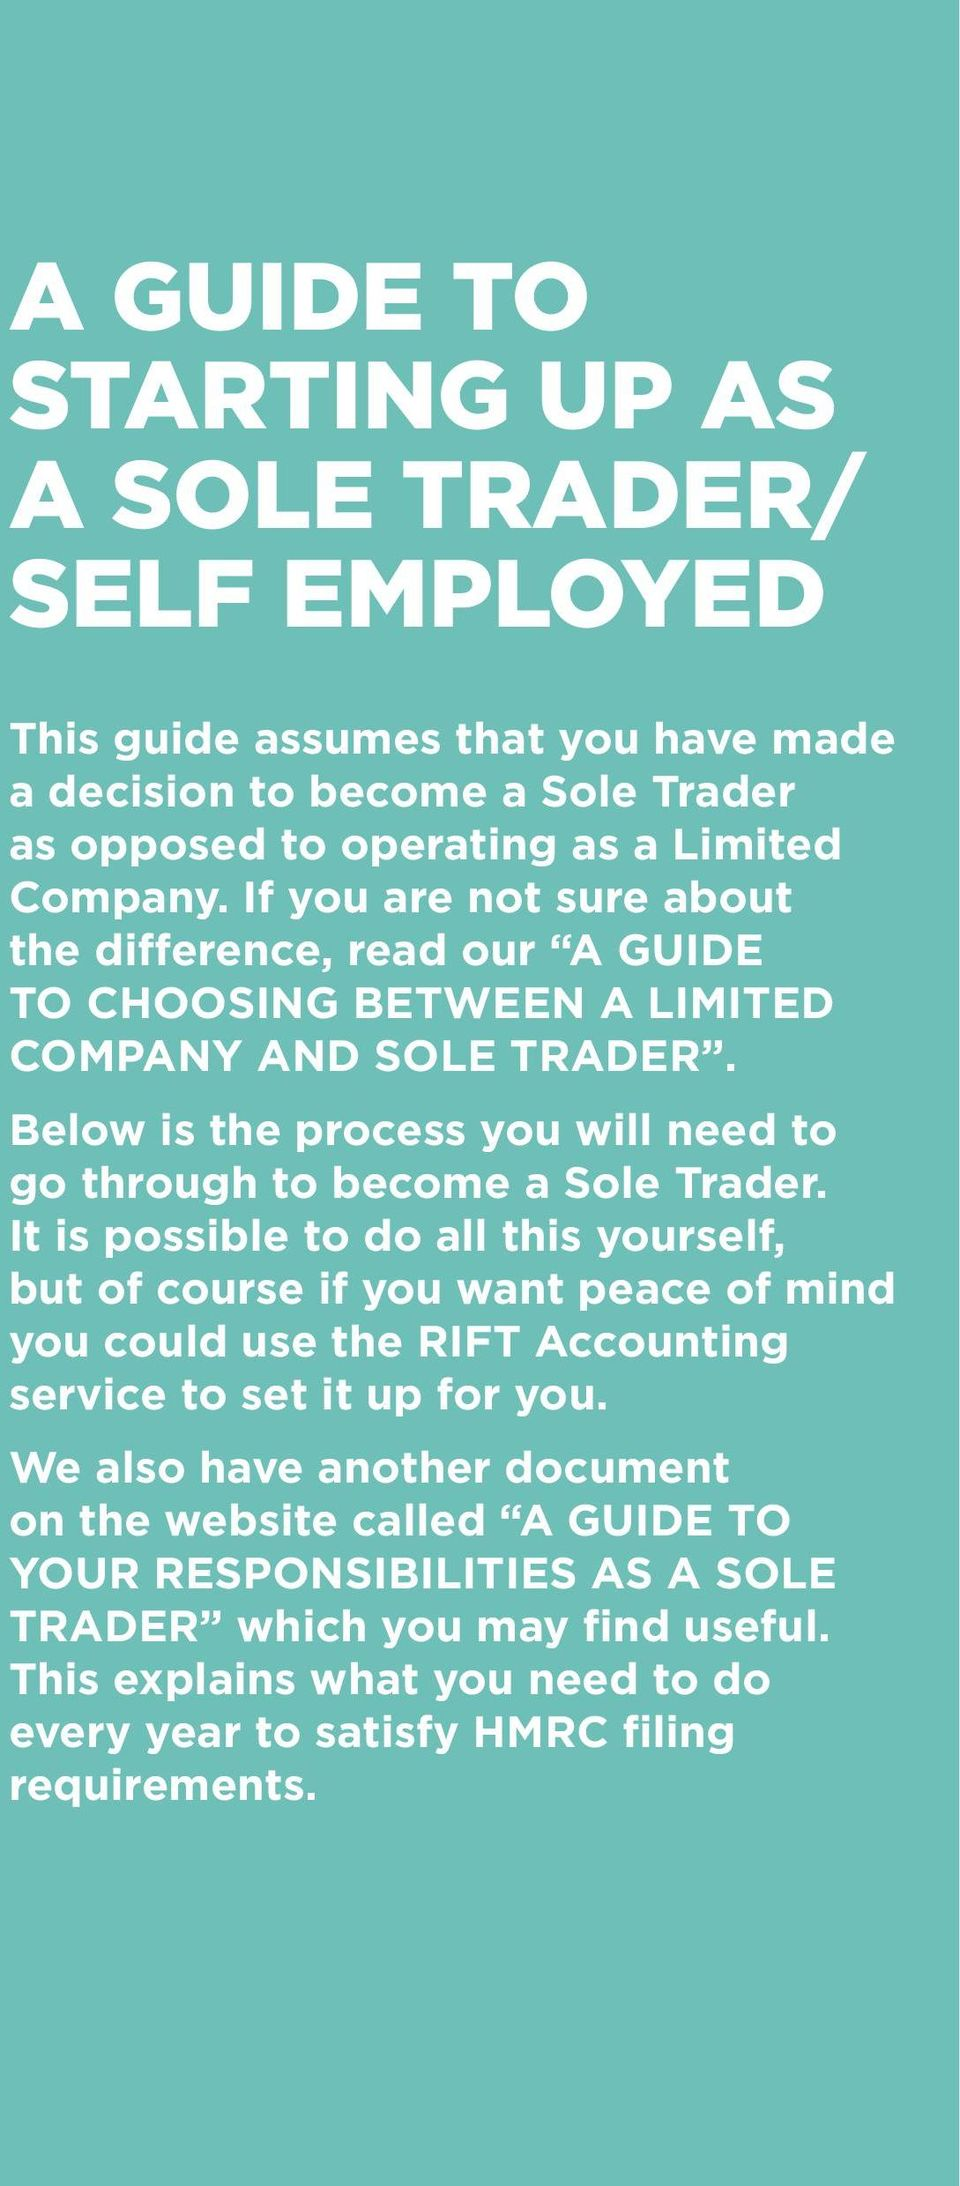 Below is the process you will need to go through to become a Sole Trader.